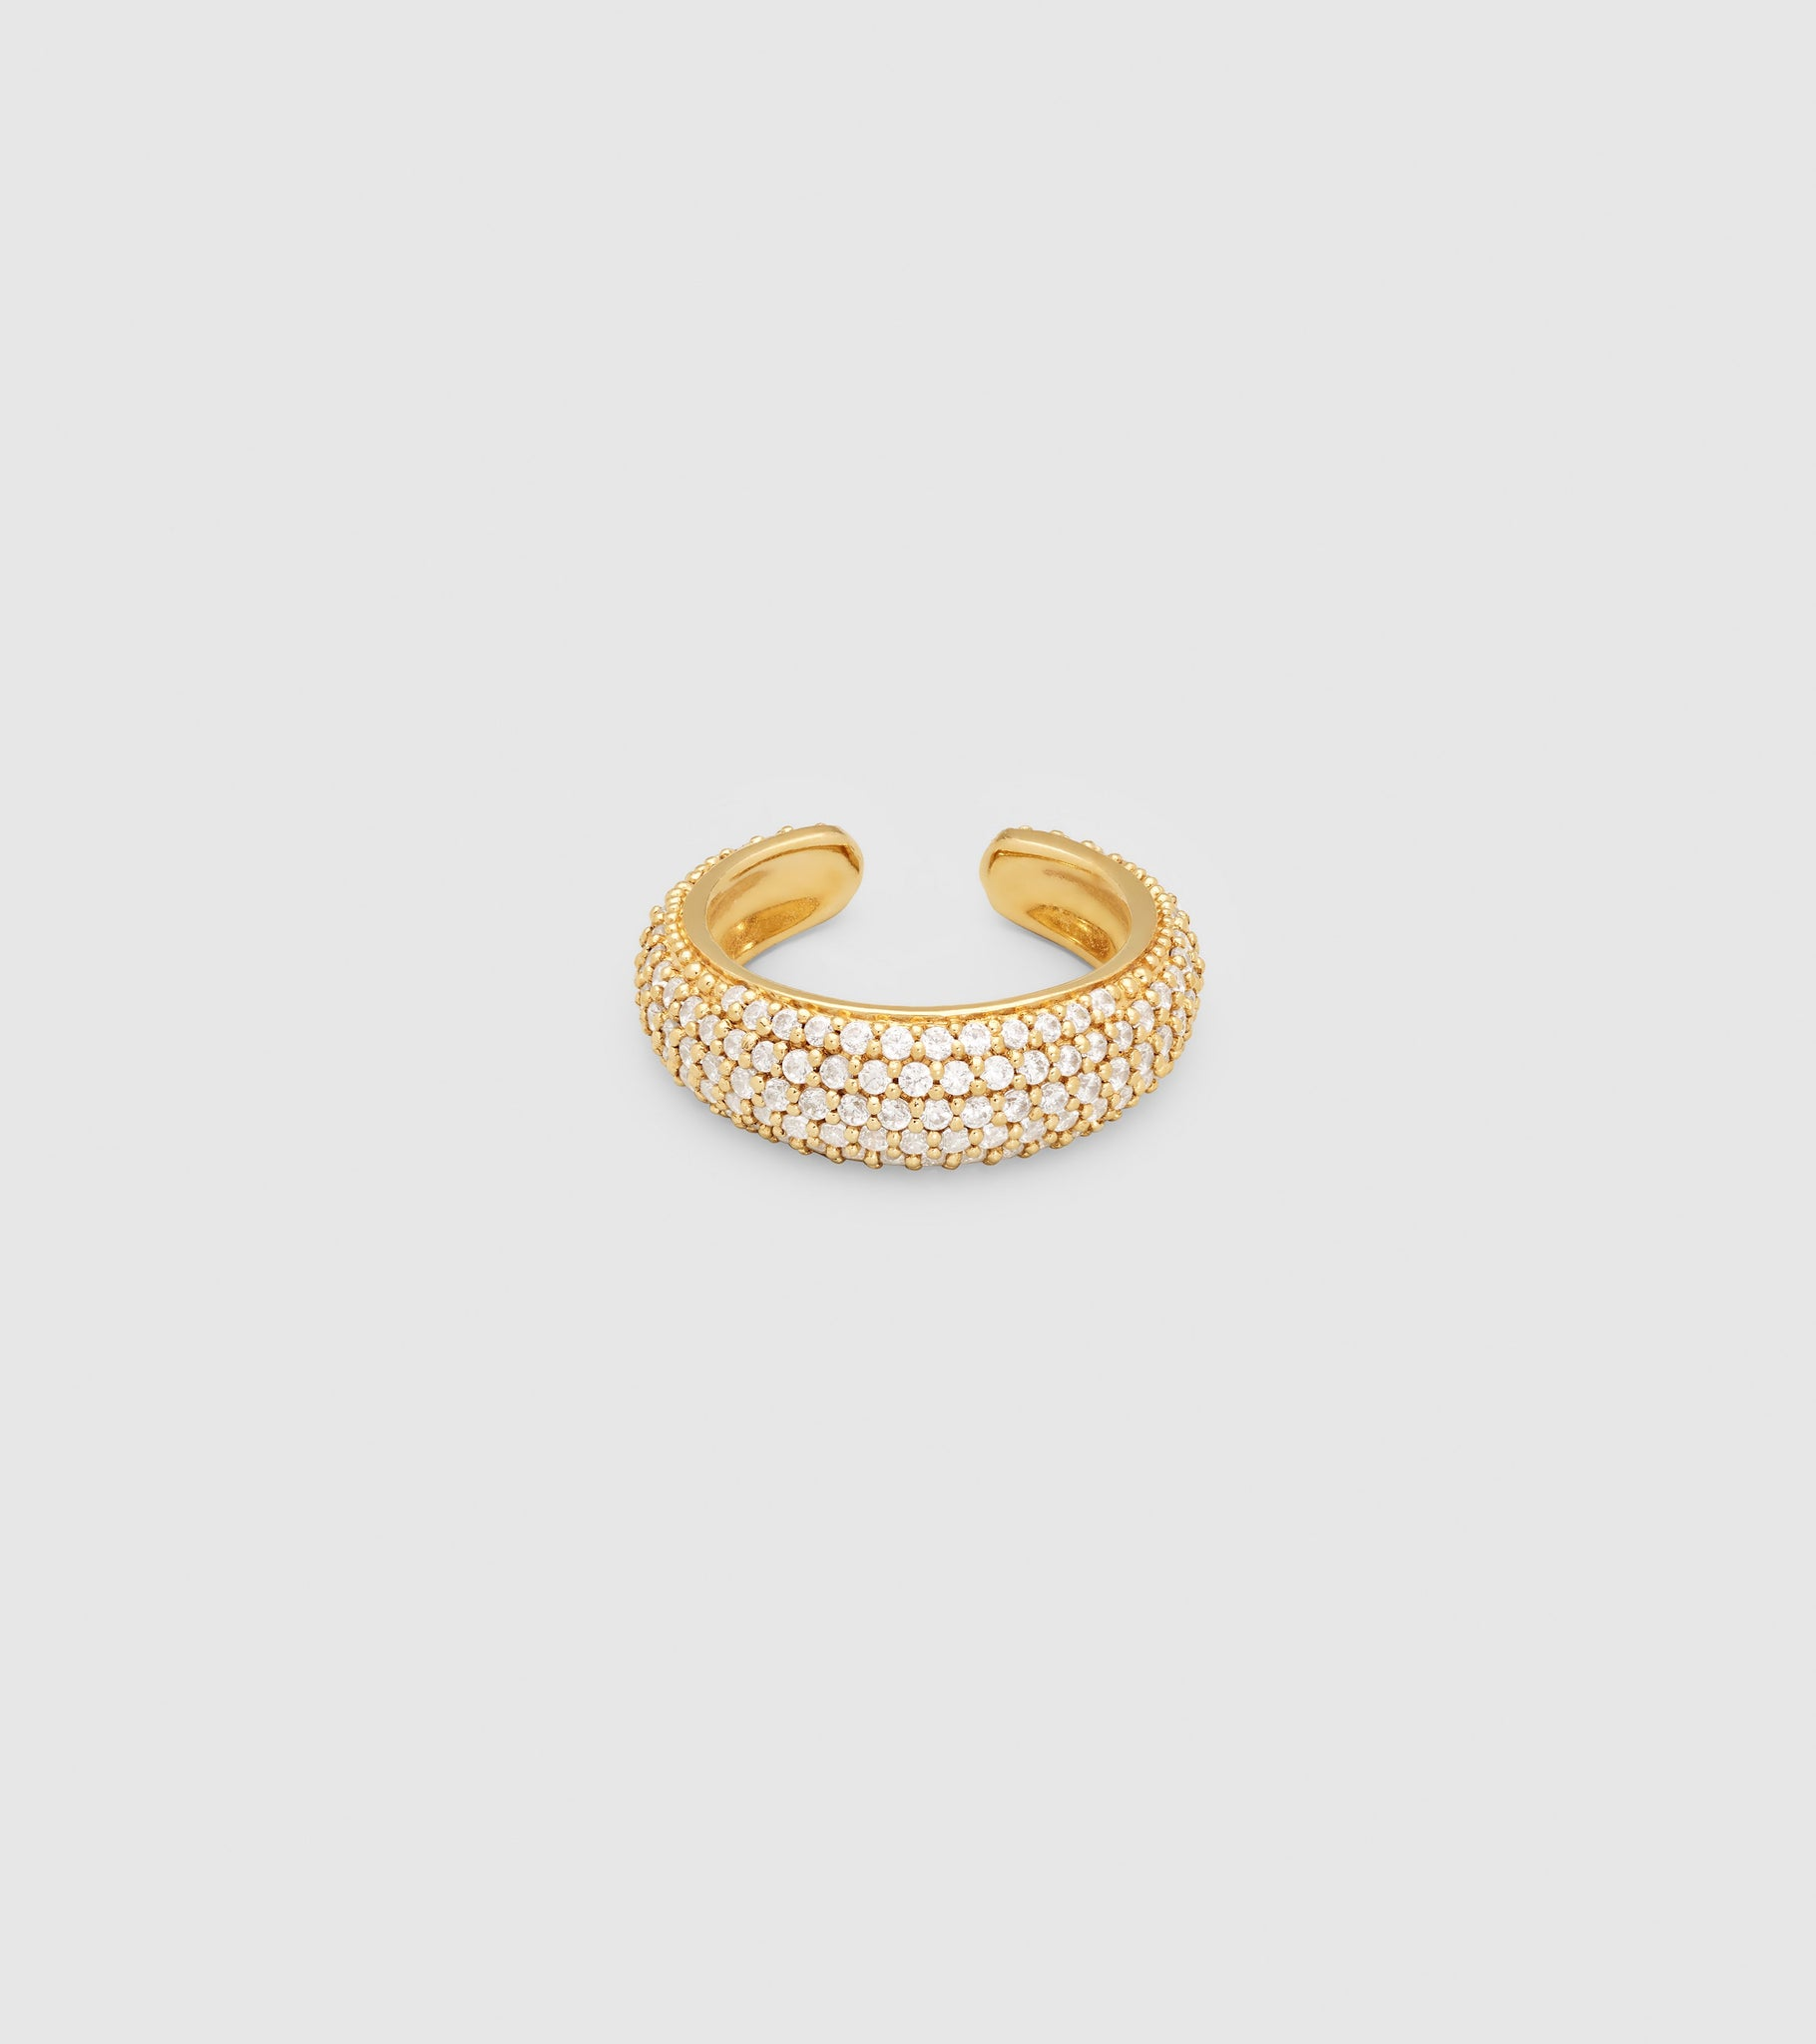 EAR CUFF THICK ZIRCONIA GOLD (M)